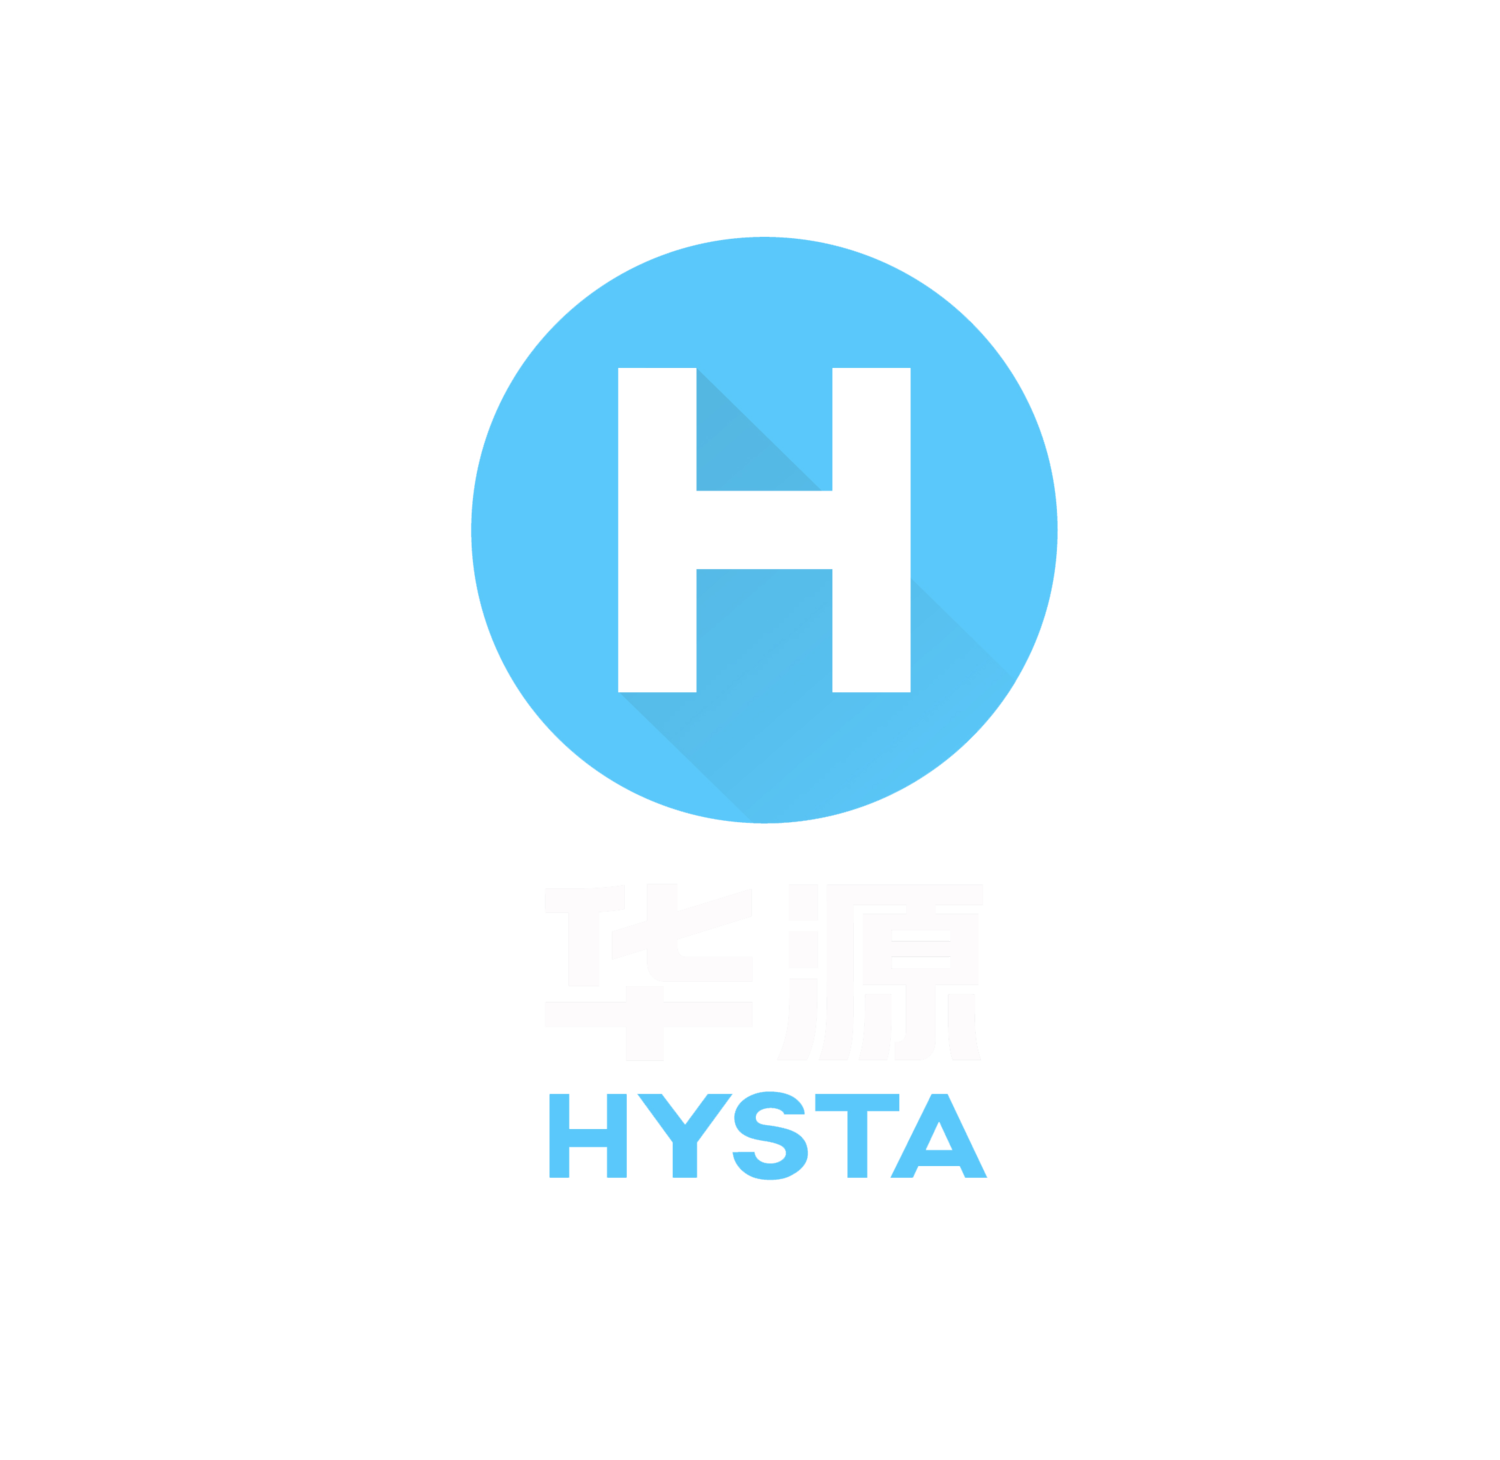 HYSTA - Hua Yuan Science and Technology Association